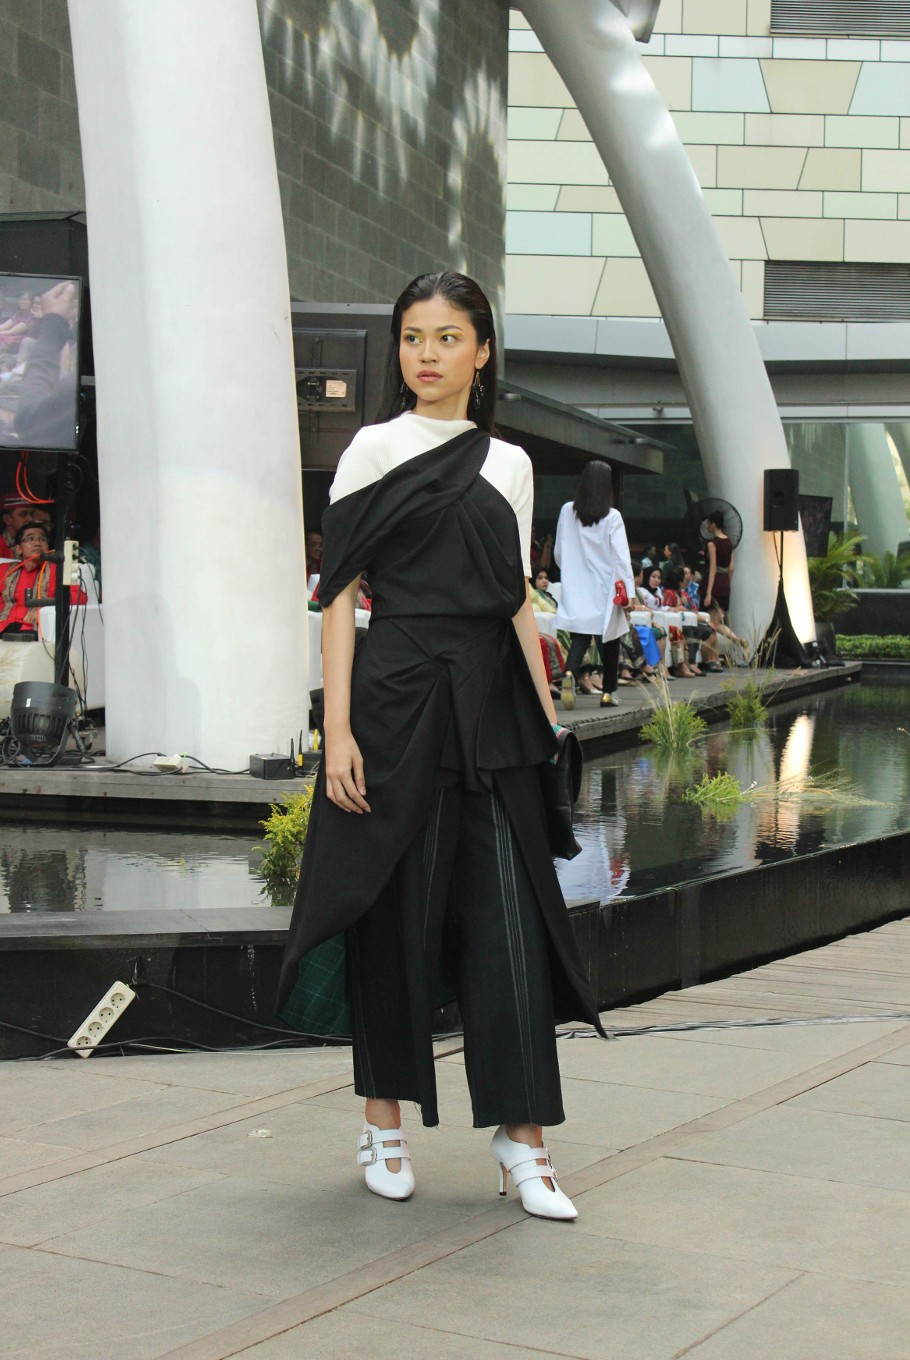 A model wears a black wrap dress from the Madeind x Billy Tjong ready to wear collection that can be purchased online.